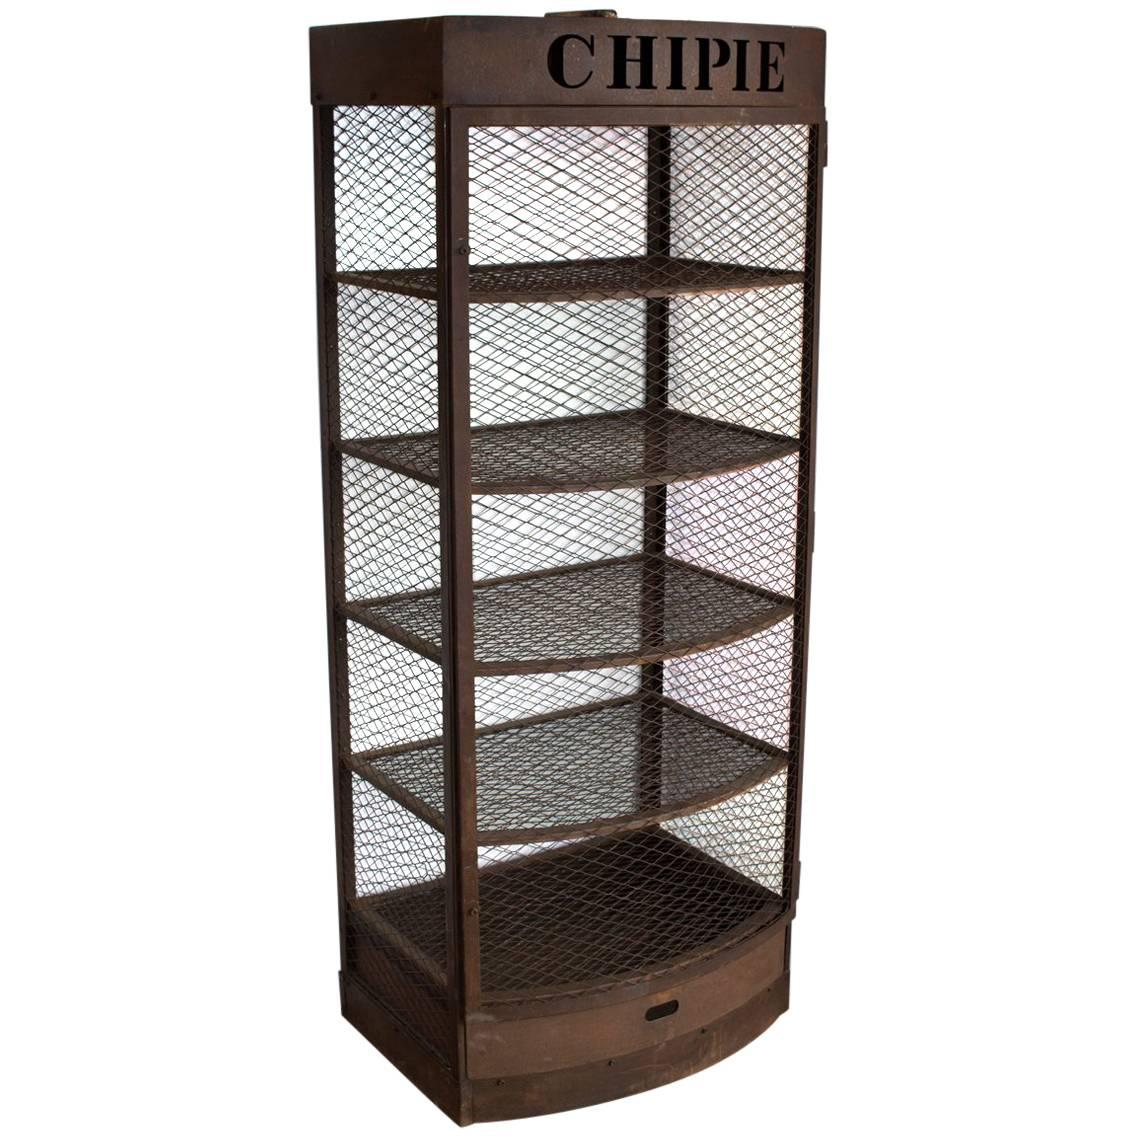 Vintage French Chipie Metal Display Case For Sale At 1stdibs